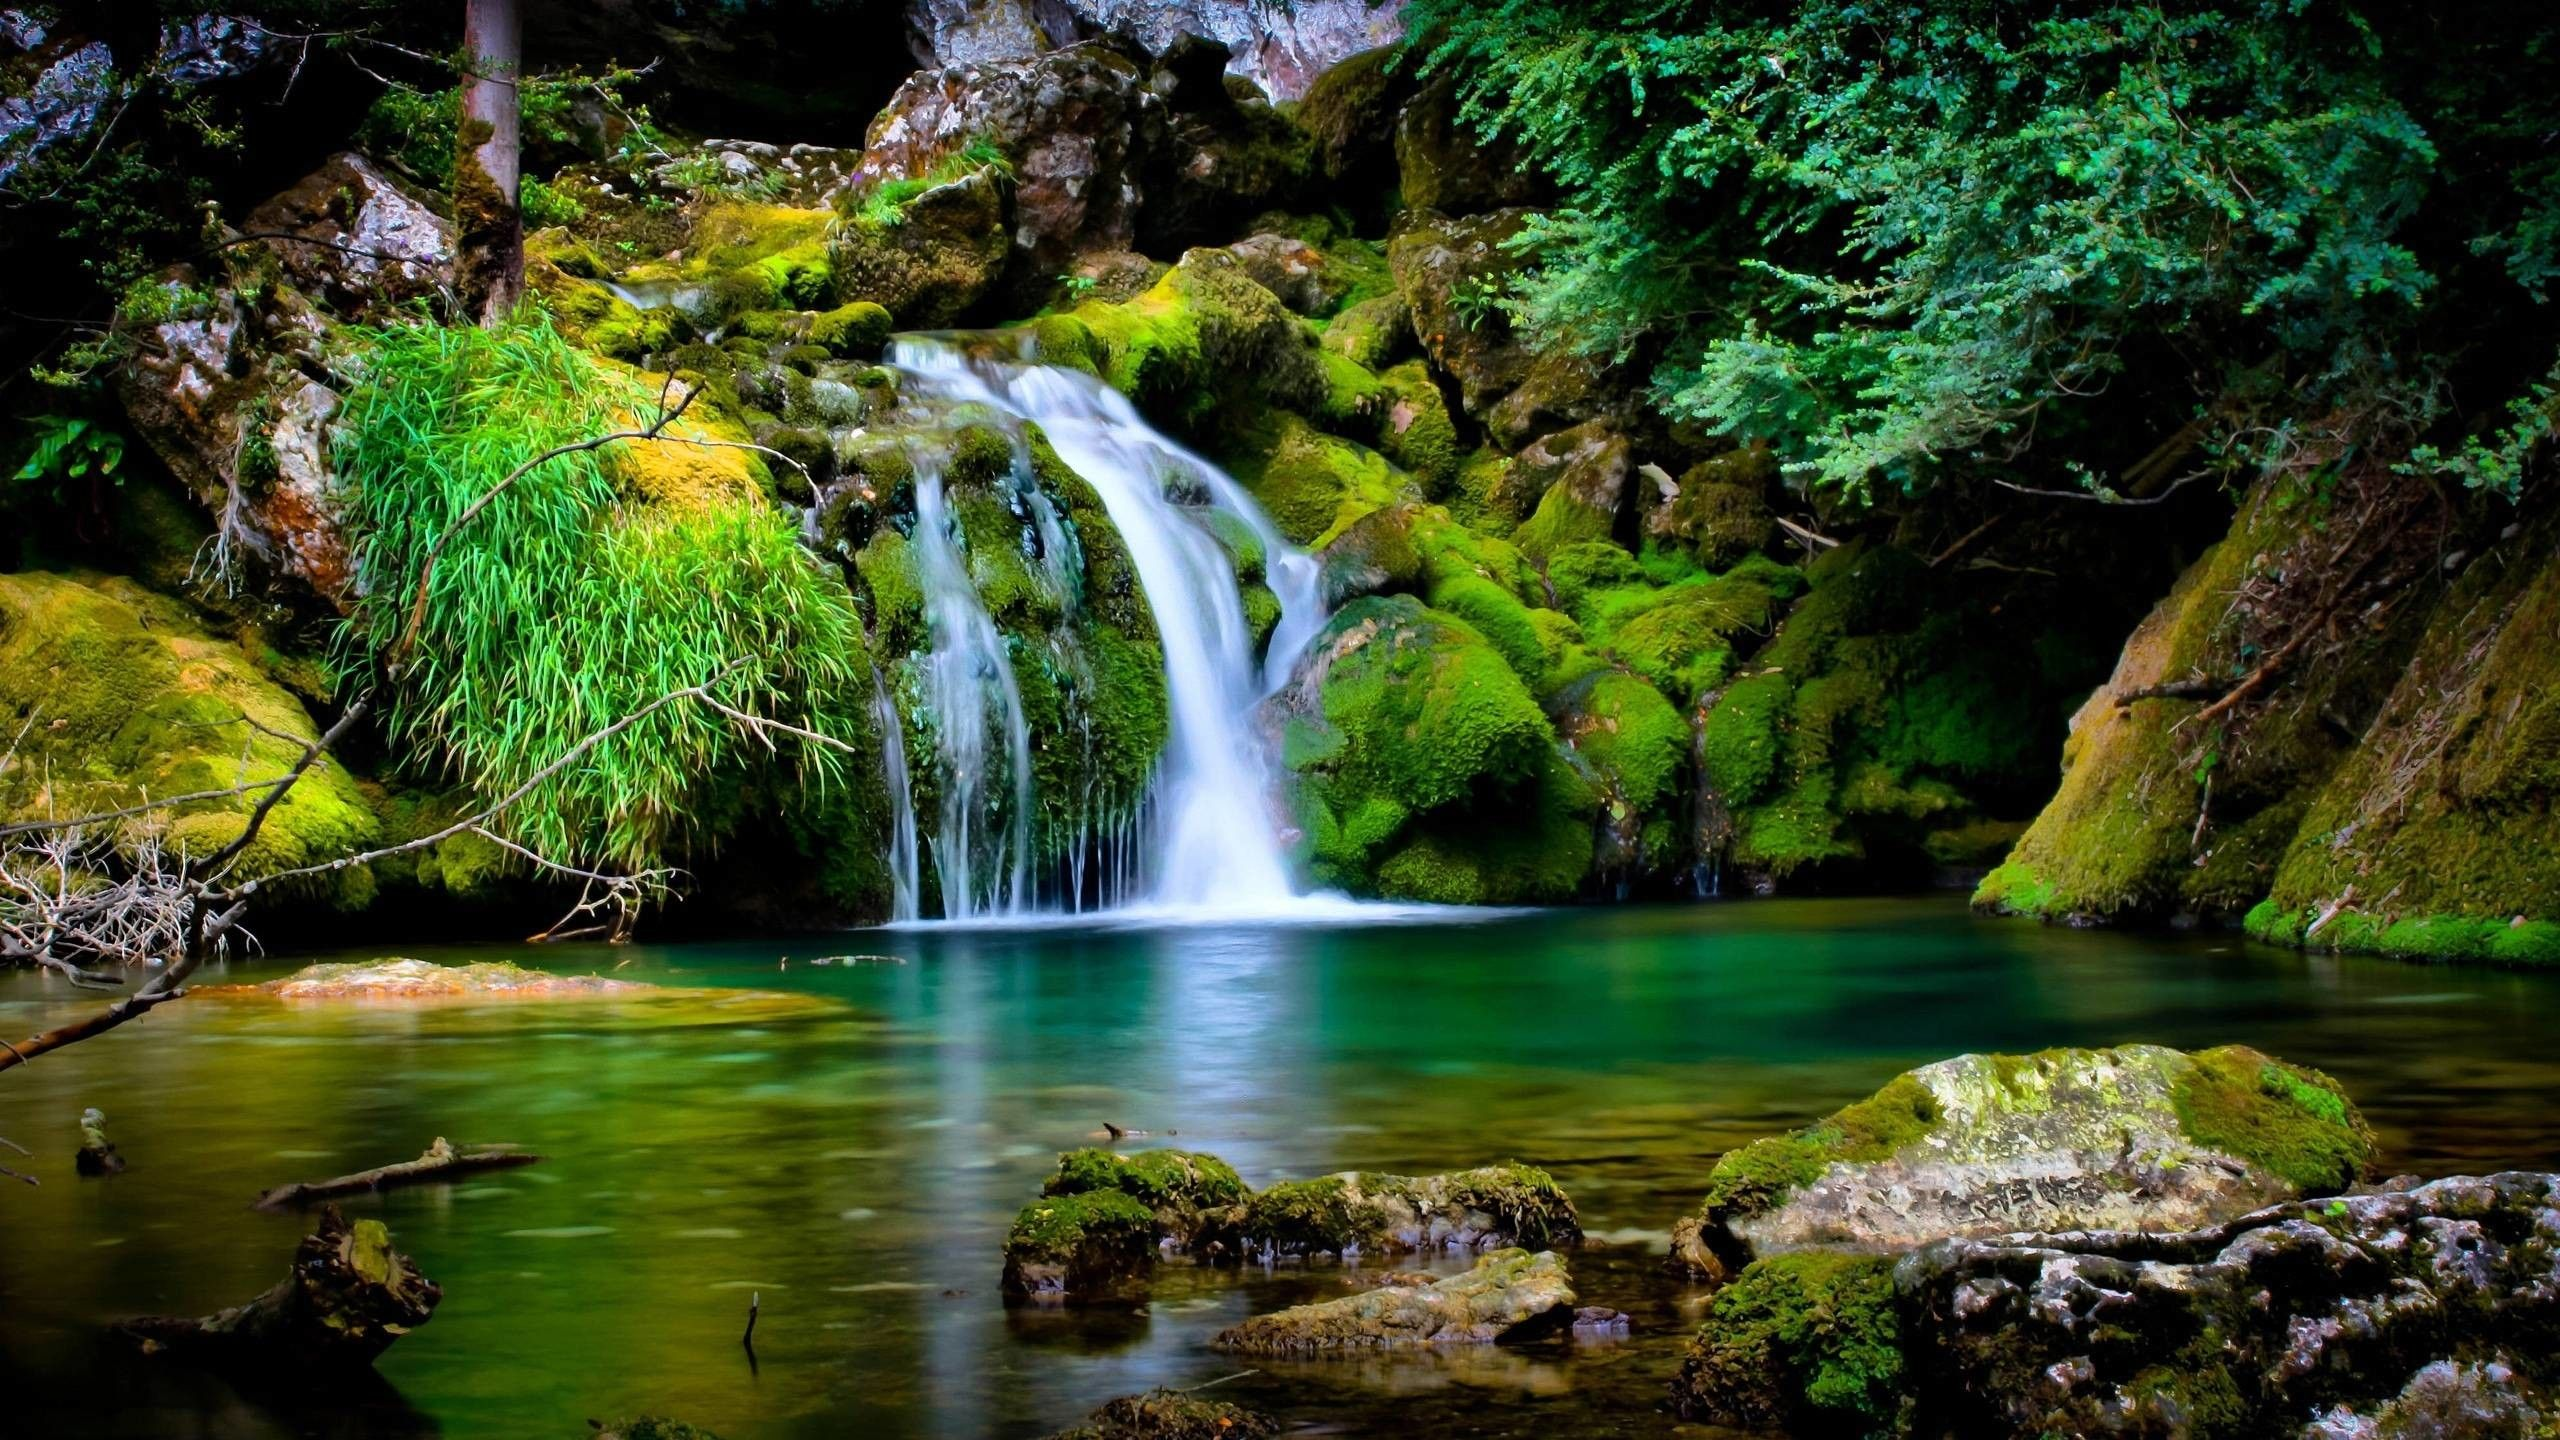 82 2560x1440 Wallpapers On Wallpaperplay Waterfall Scenery Waterfall Wallpaper Waterfall Pictures